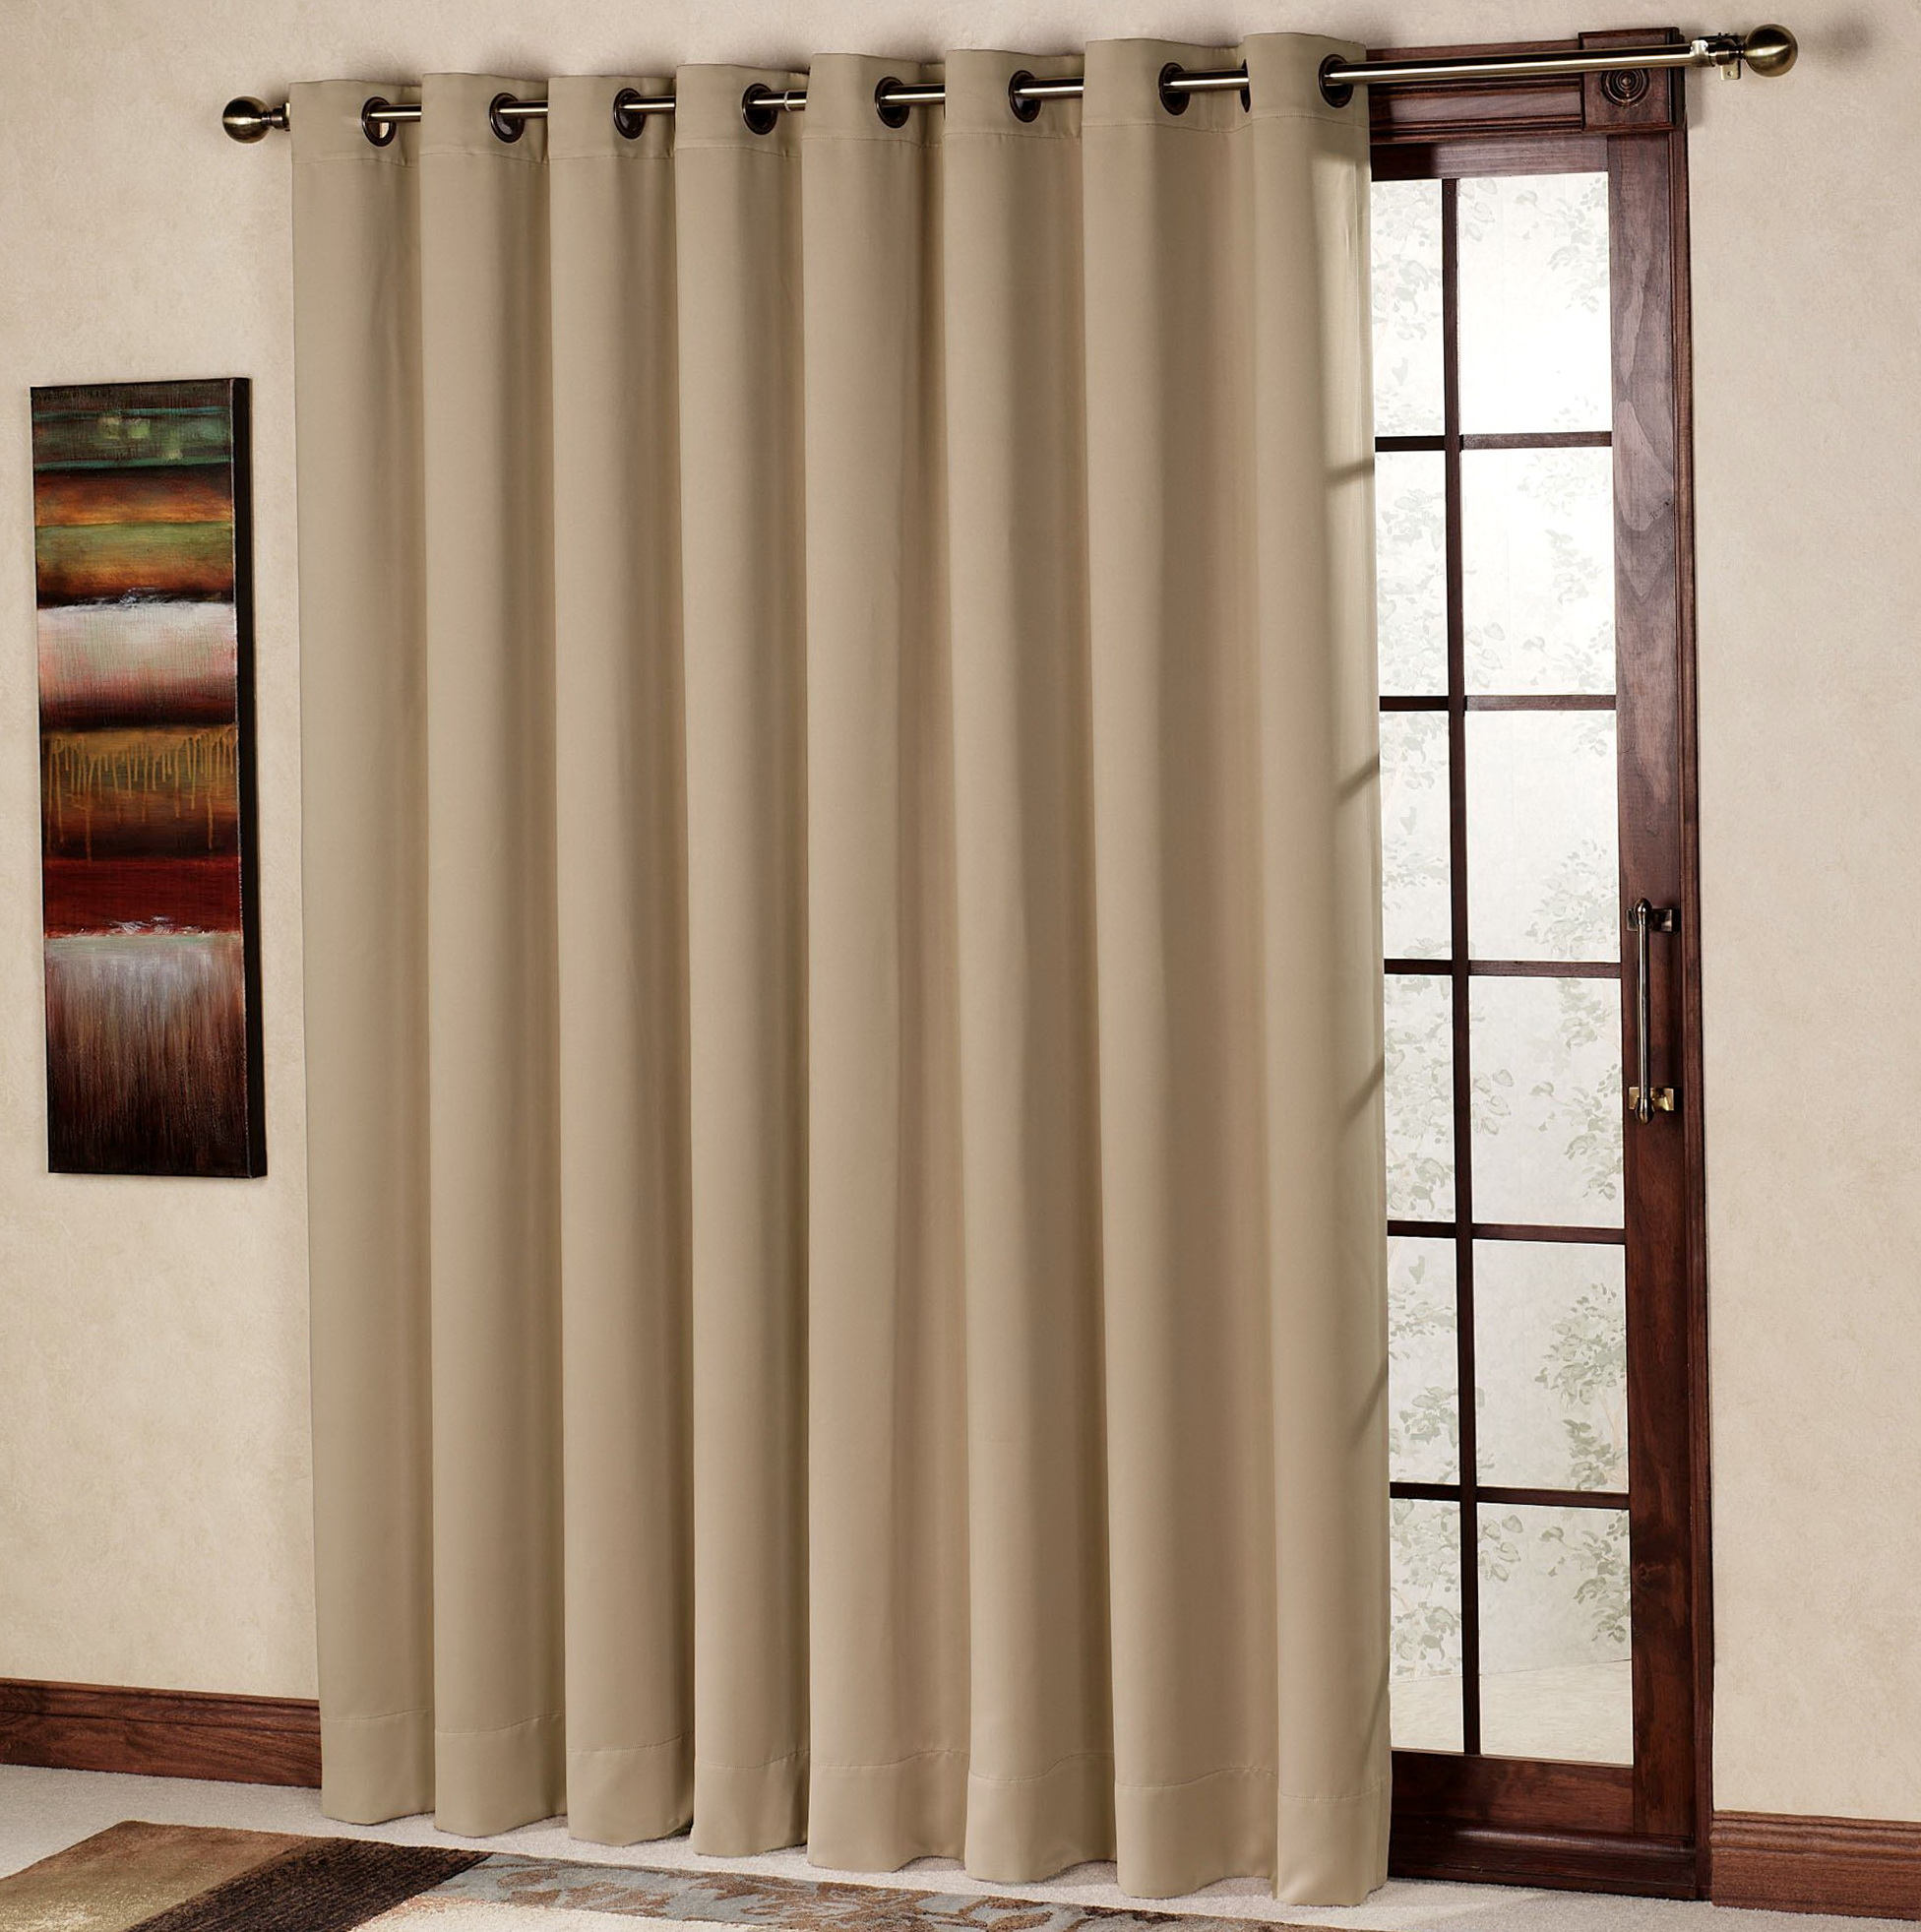 single panel curtain. Single Panel Curtain For Sliding Glass Door